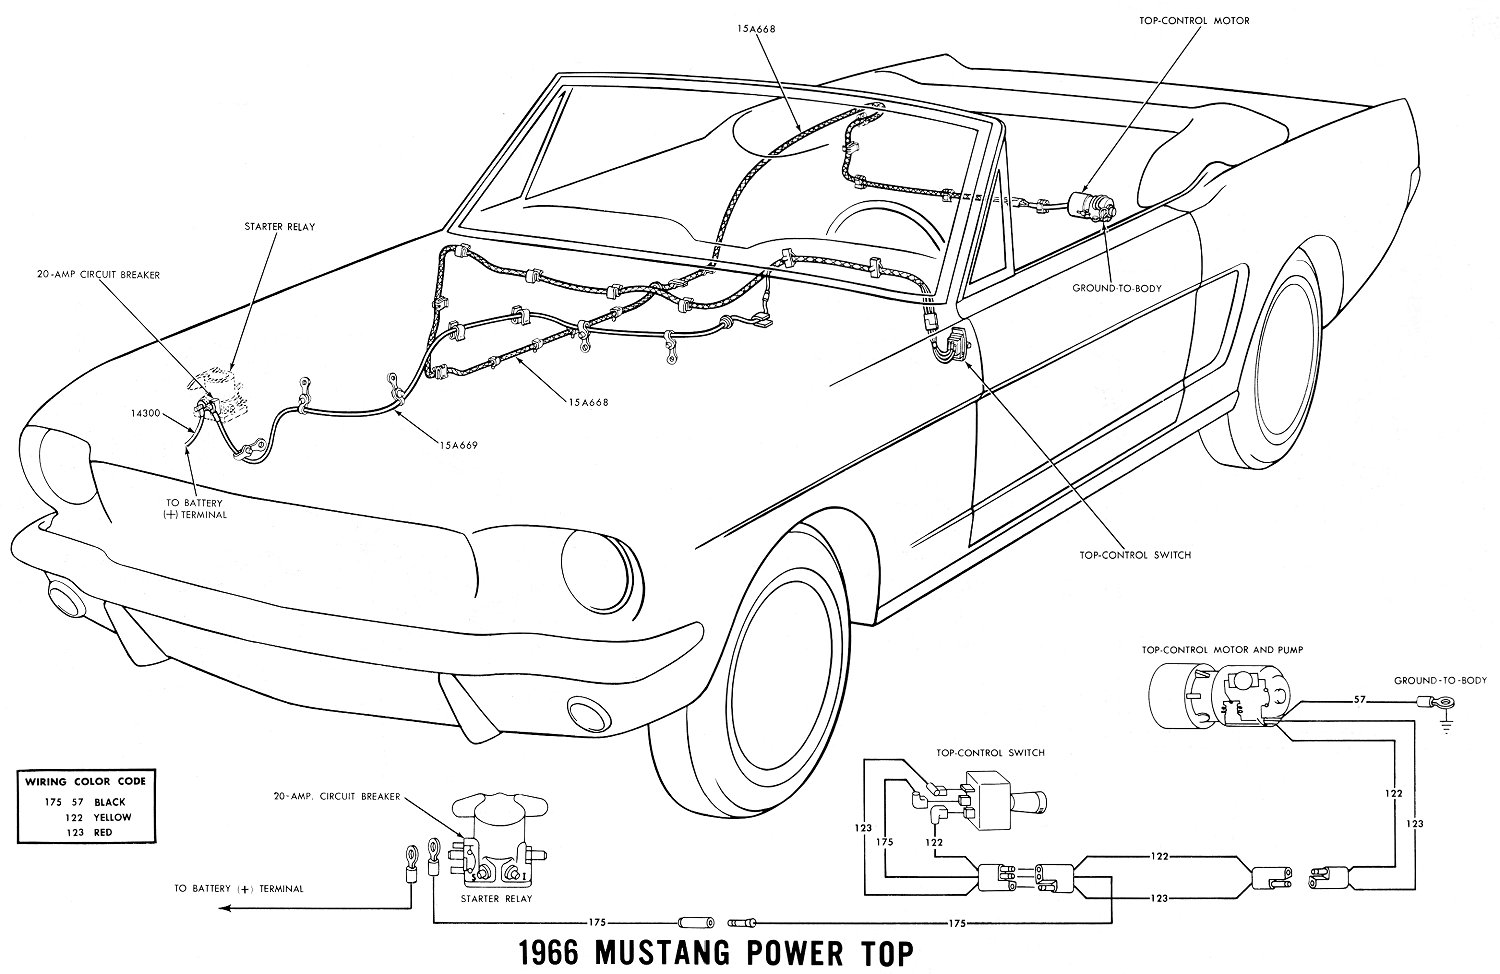 1968 Mustang Am Fm Radio Wiring Auto Electrical Diagram Ford El Stereo Ritningar